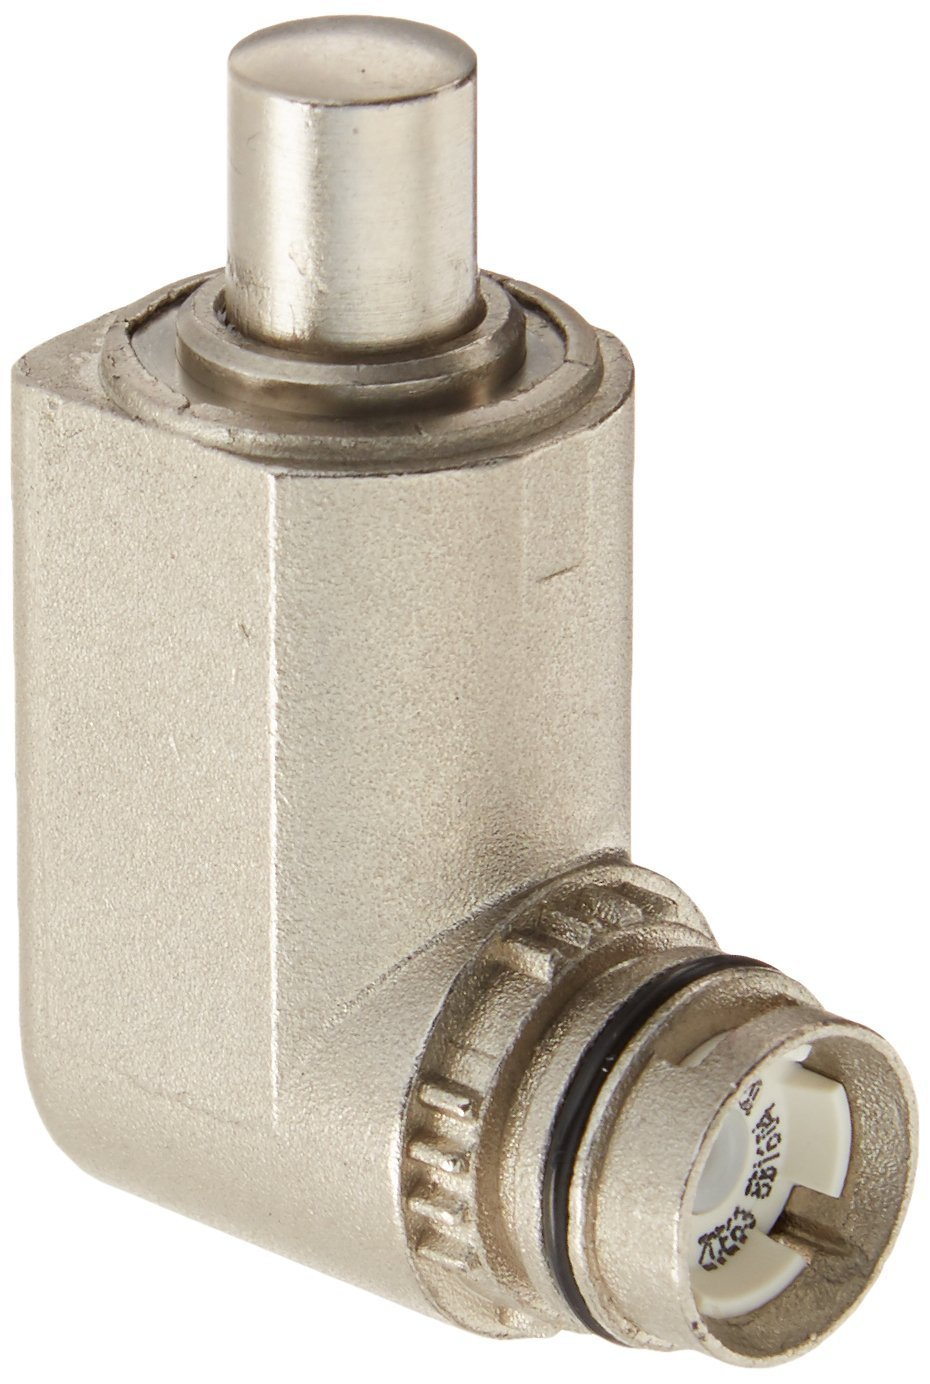 Side-Position Telemecanique ZCE63 Metal Limit Switch Head for ZCM Series Body Plunger-Type Spring Return Schneider Electric